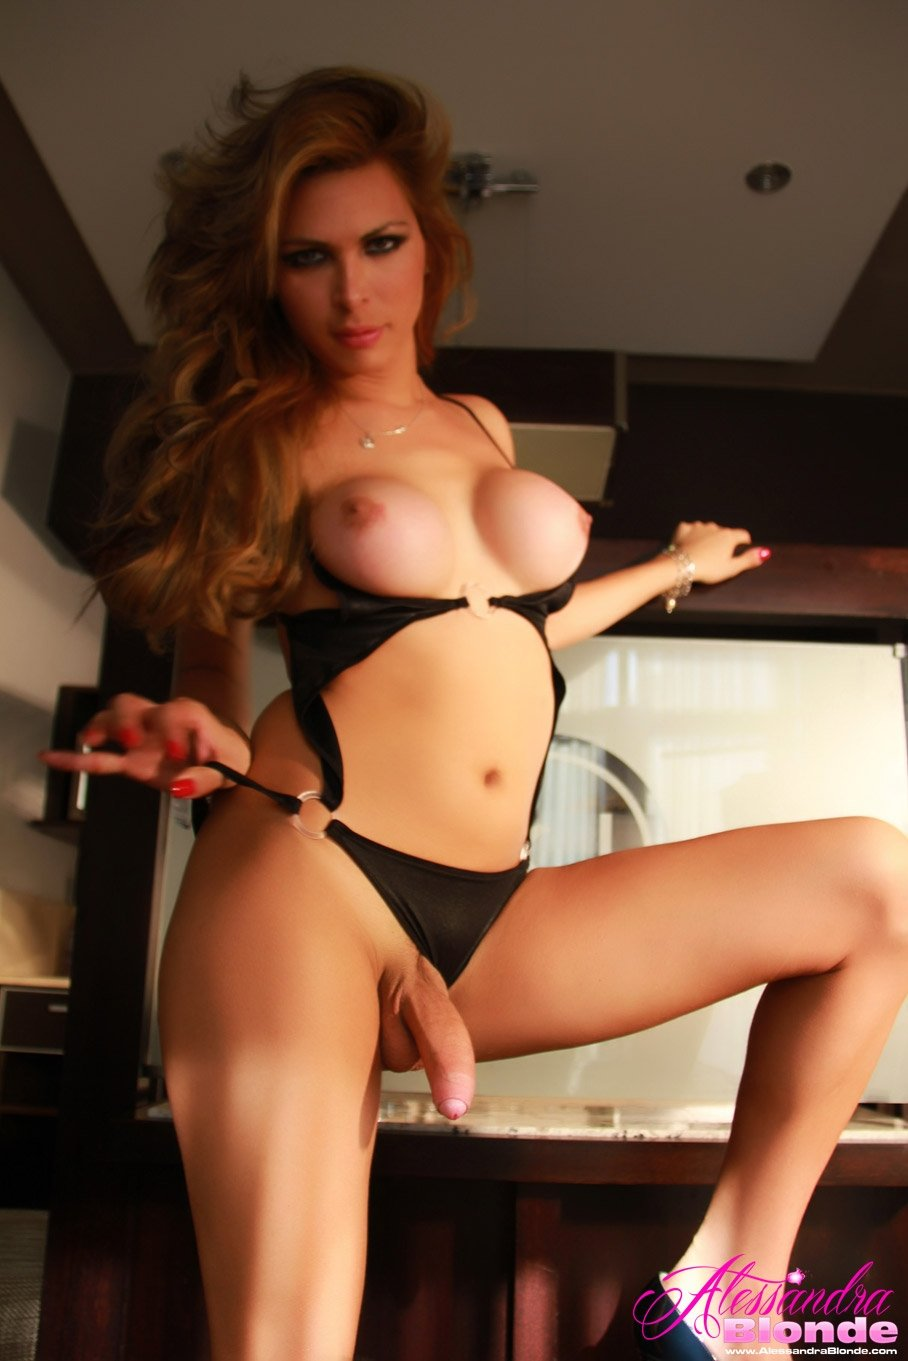 Alessandra Blonde Porn Videos showing xxx images for alessandra blonde shemale xxx | www